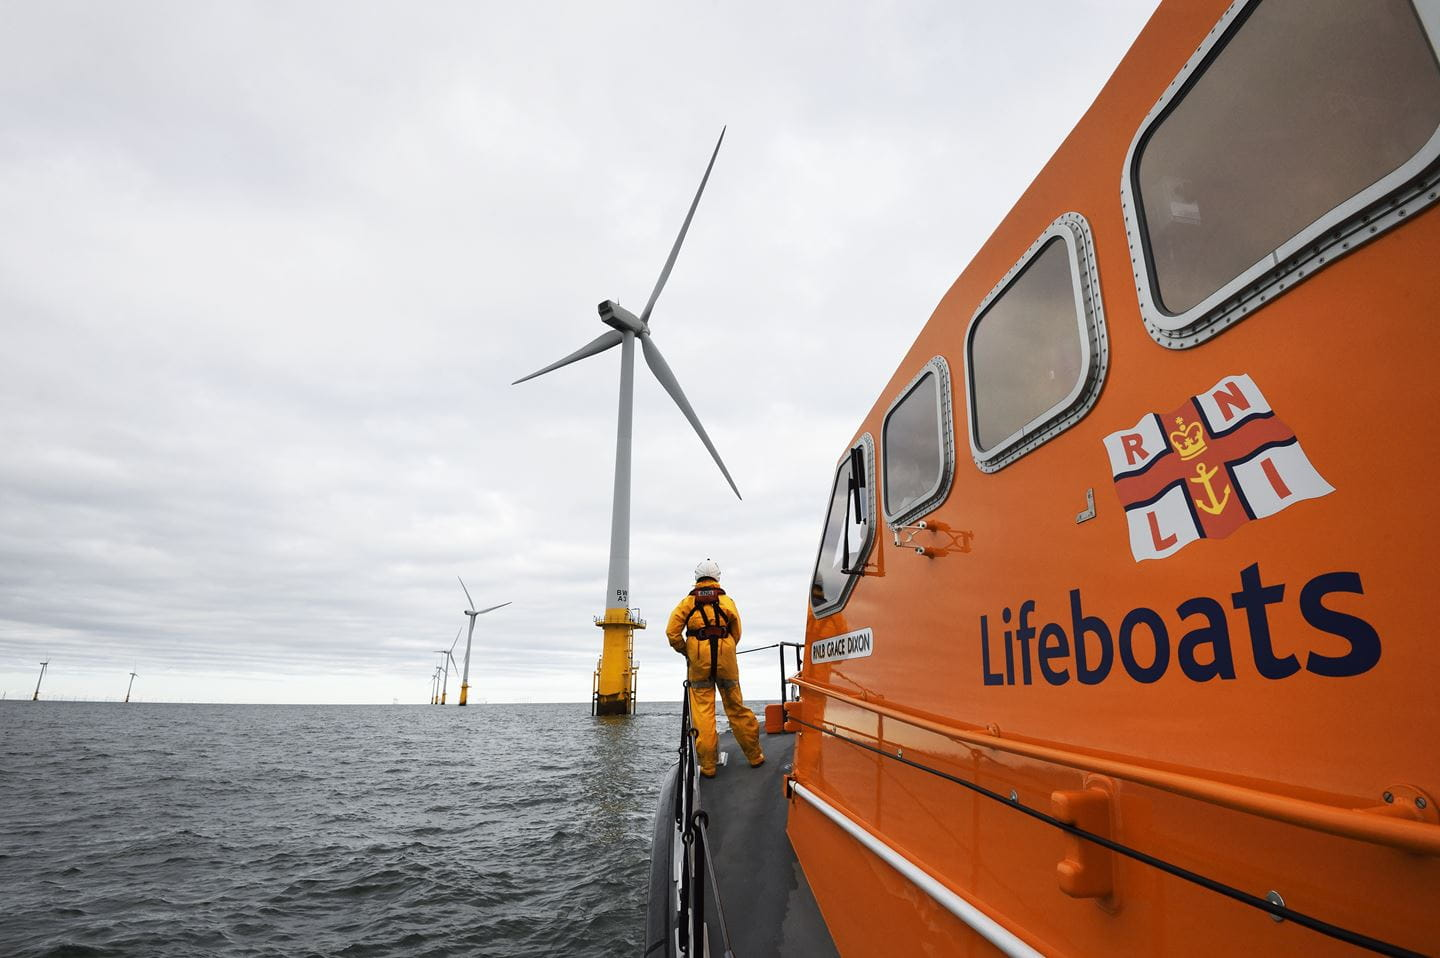 Offshore wind having a positive impact on coastal communities - RNLI funding